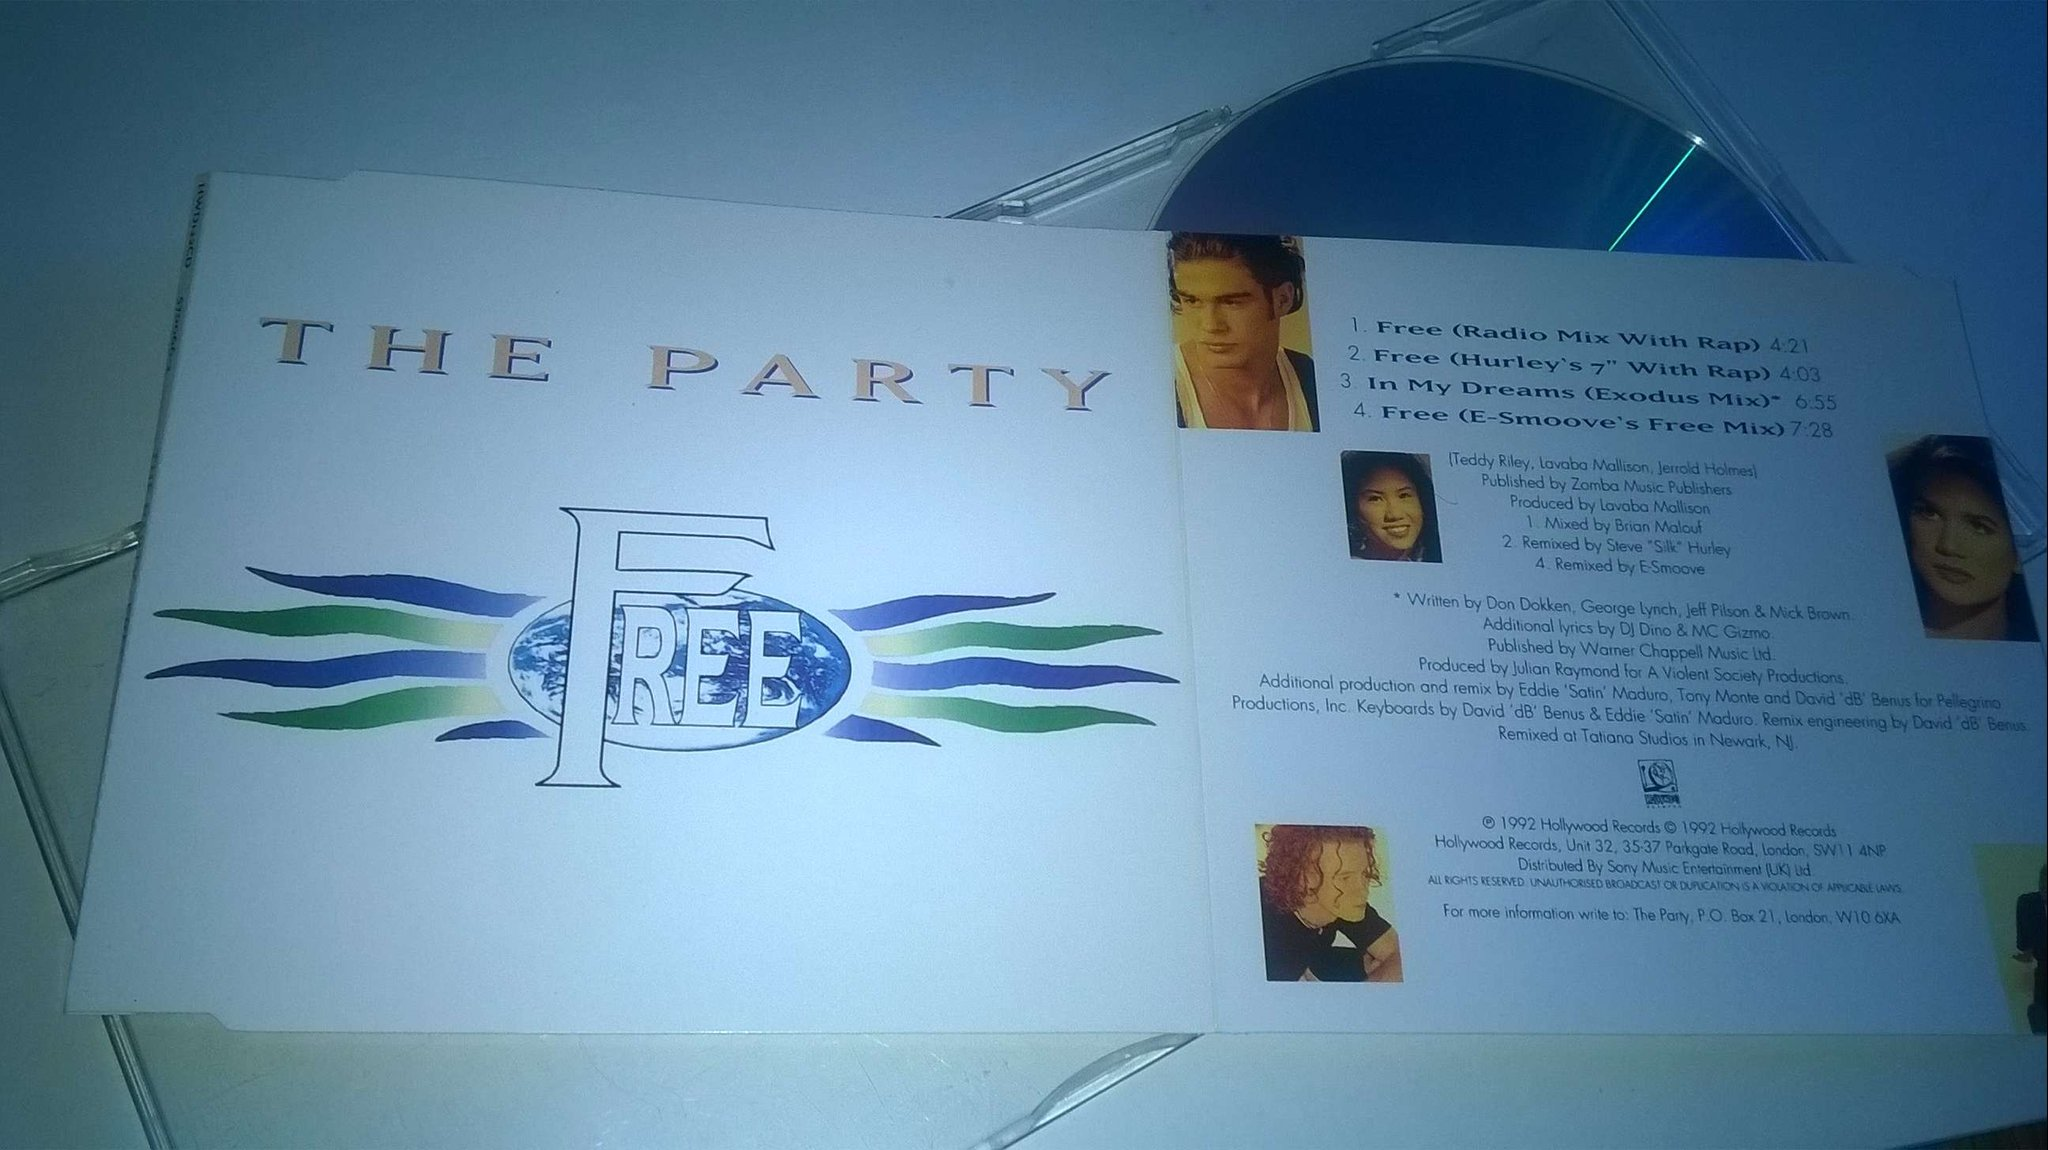 The Party - Free, CD, Maxi-Single